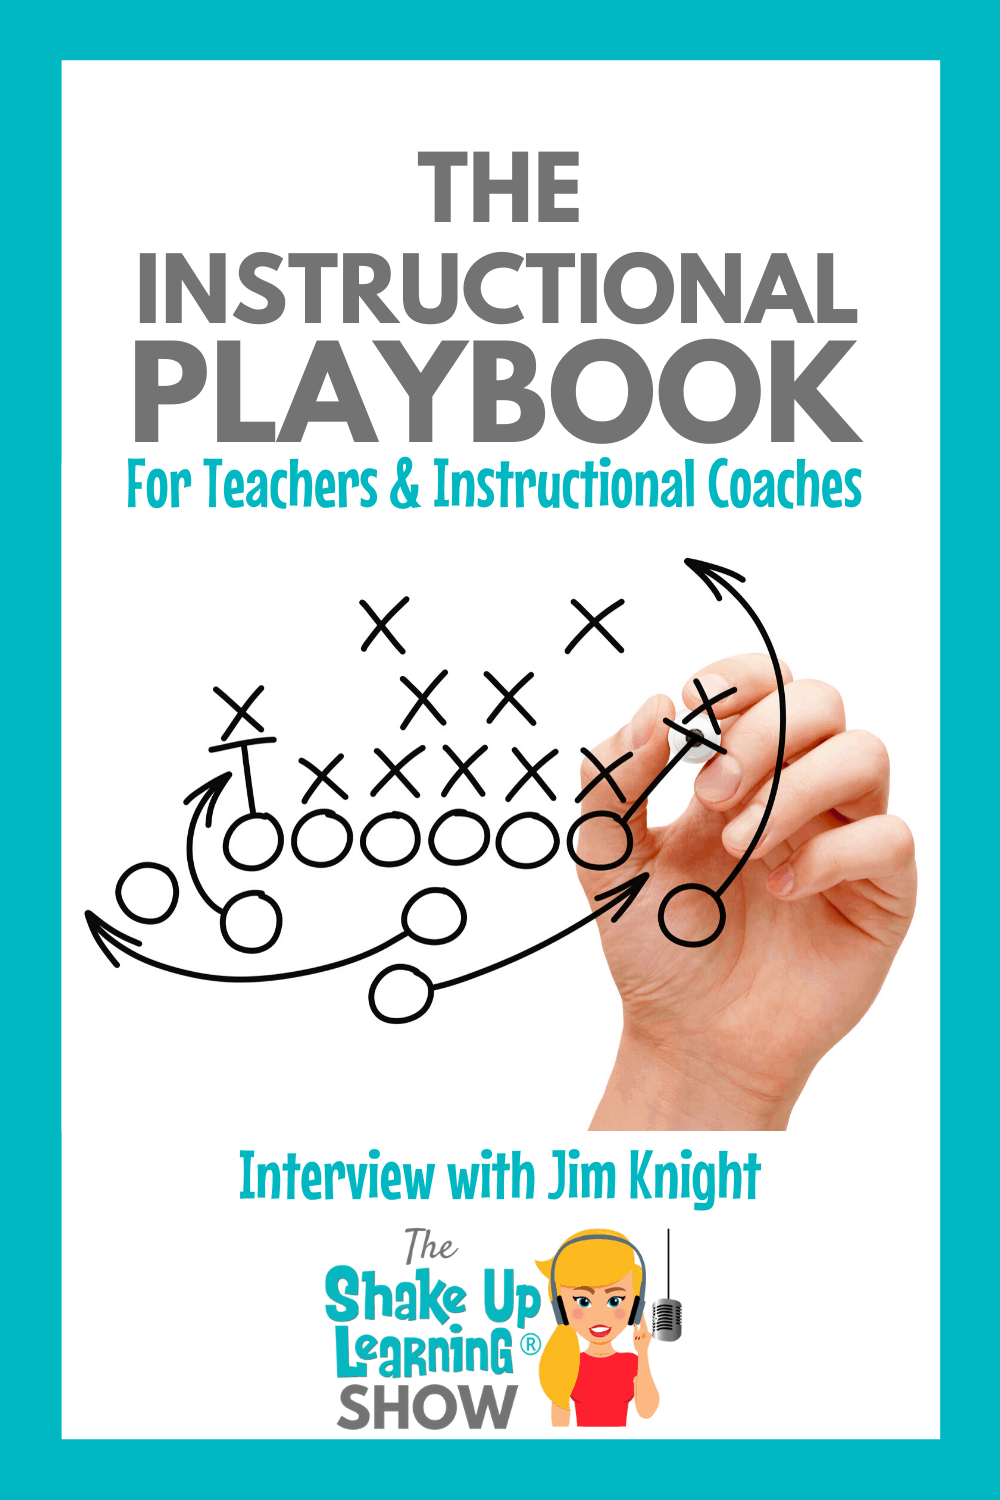 The Instructional Playbook (interview with Jim Knight)